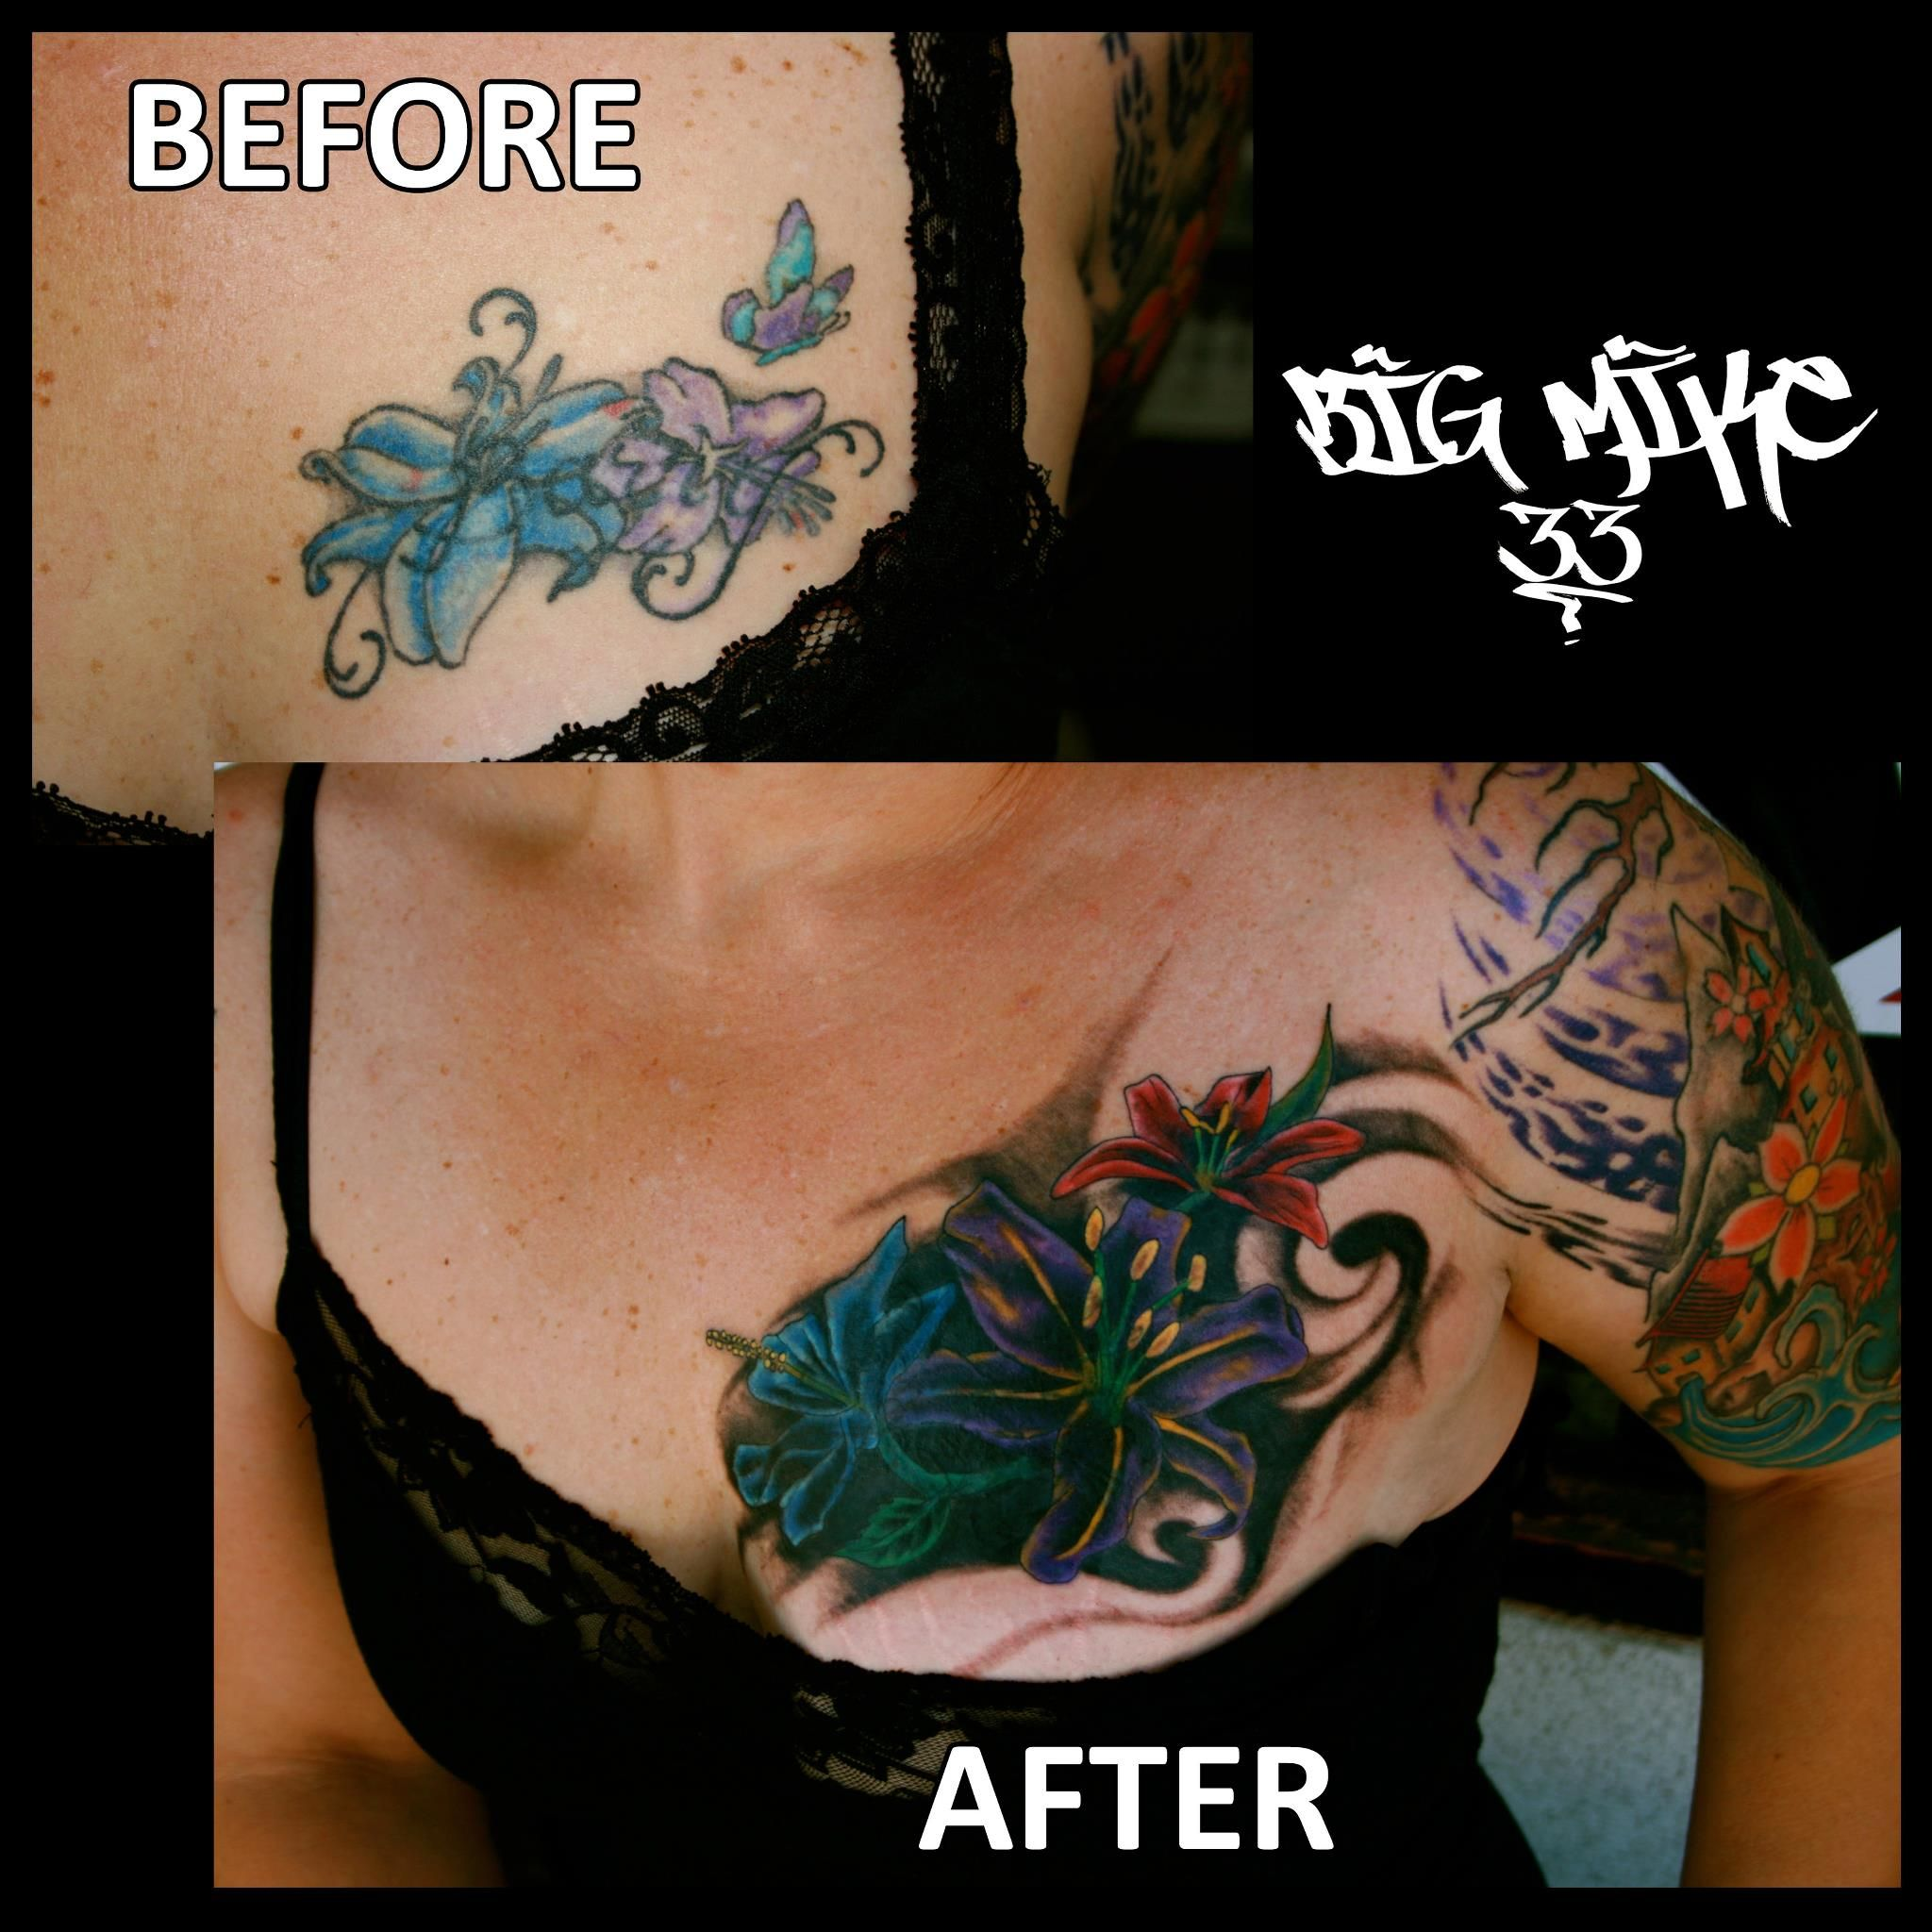 Covering A Poorly Done Cover Up After Picture Tattooed By Big